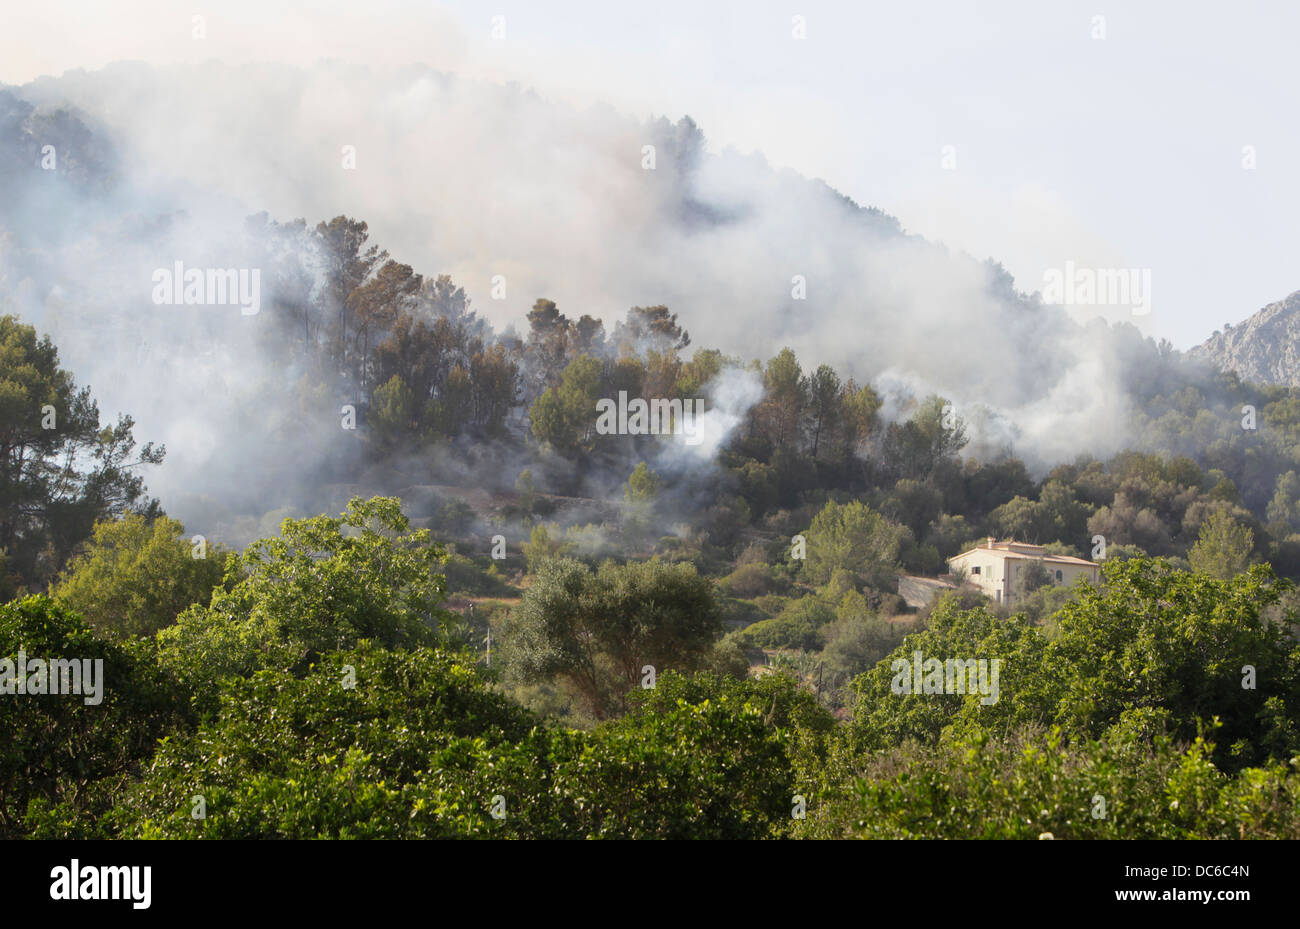 Smoke flies over Estellencs mountains in the island of Mallorca after a massive fire spread around 2300 hectares. - Stock Image